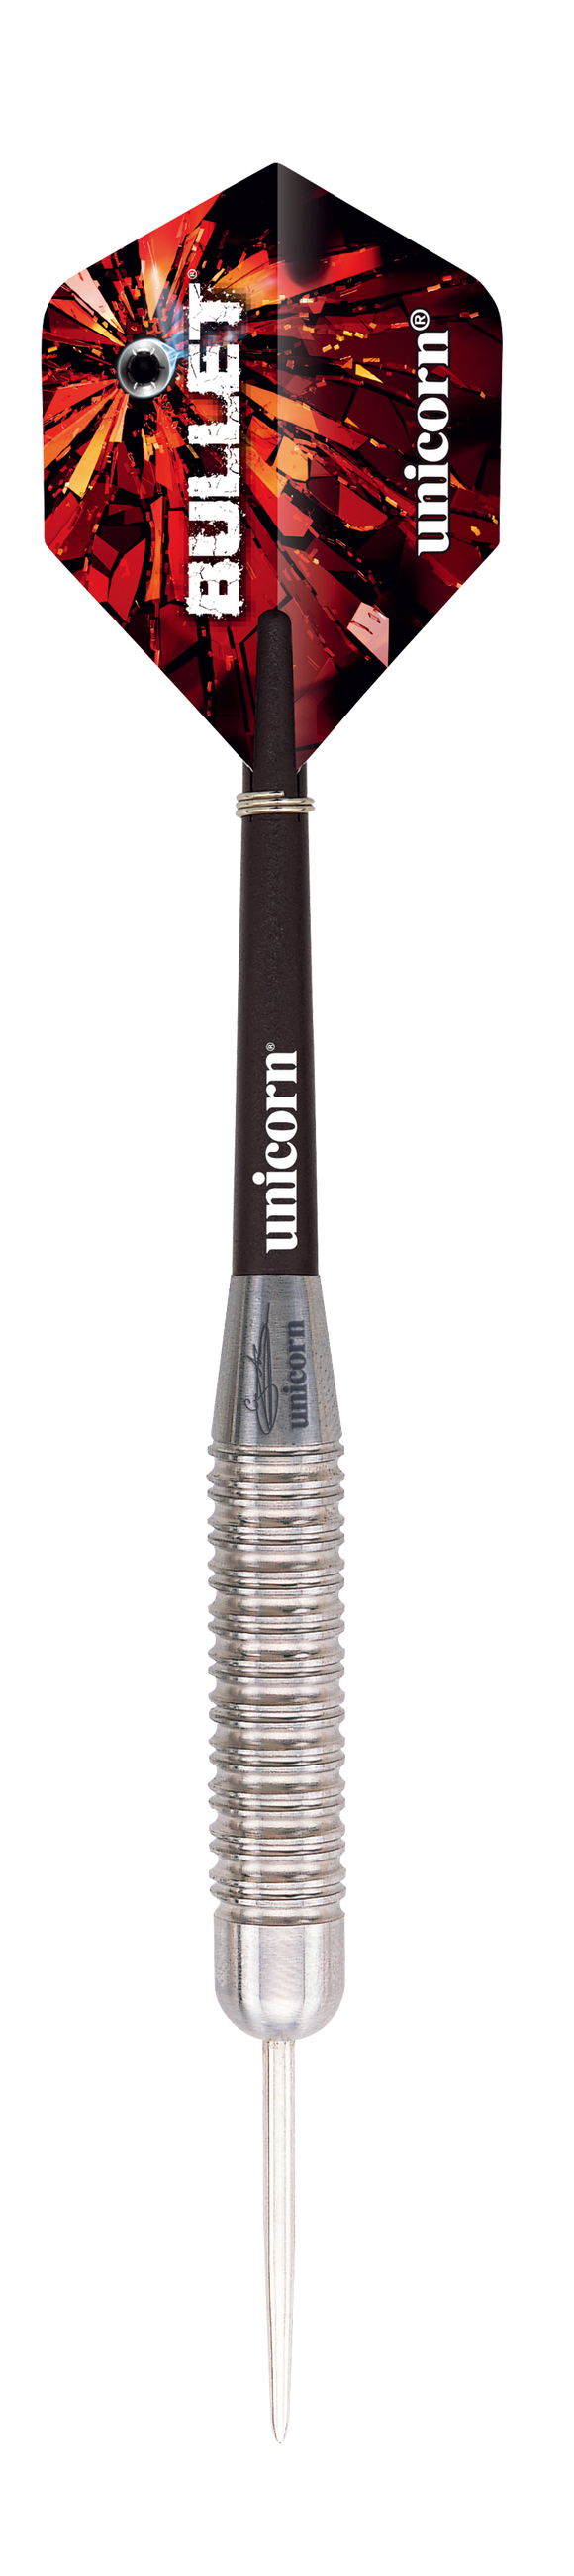 Unicorn Gary Anderson Bullet Stainless Steel, Steel Tip Darts 22g, 24g, 26g